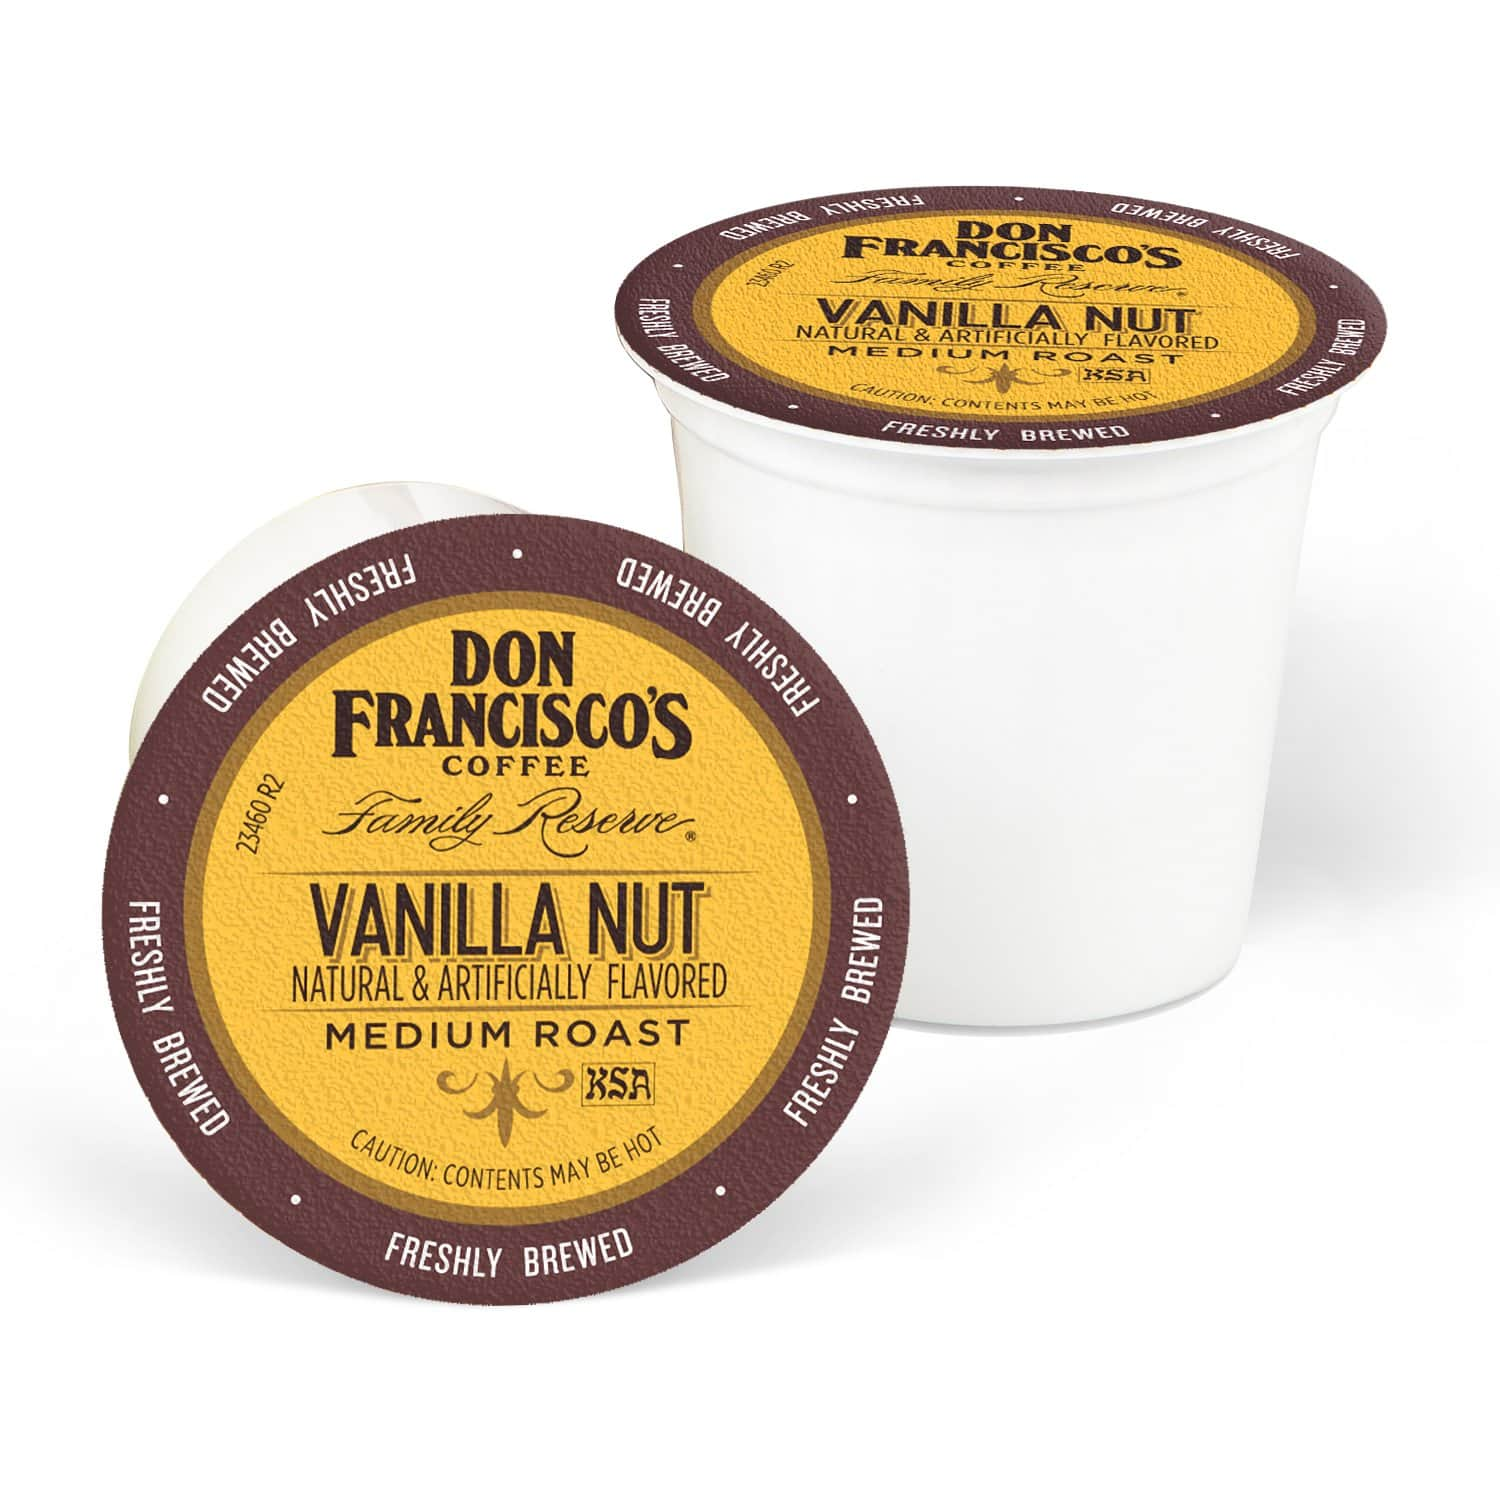 24-Ct Don Francisco's Medium Roast Coffee K-Cups (Vanilla Nut) $6 w/ S&S + Free Shipping w/ Prime or on $25+